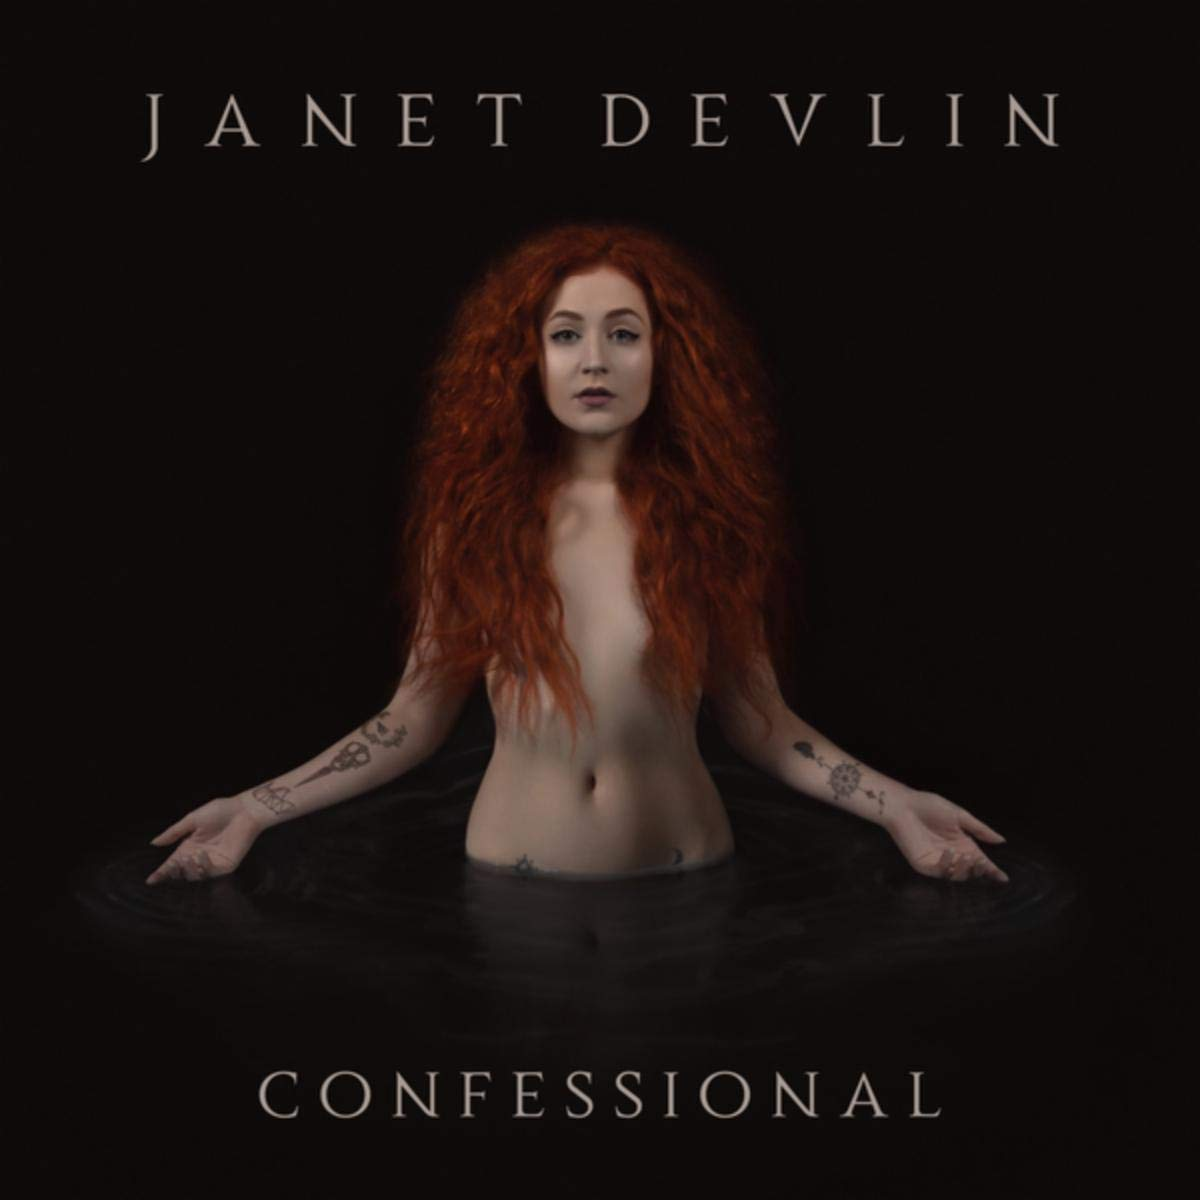 Janet Devlin - Confessional (2020) [FLAC] Download